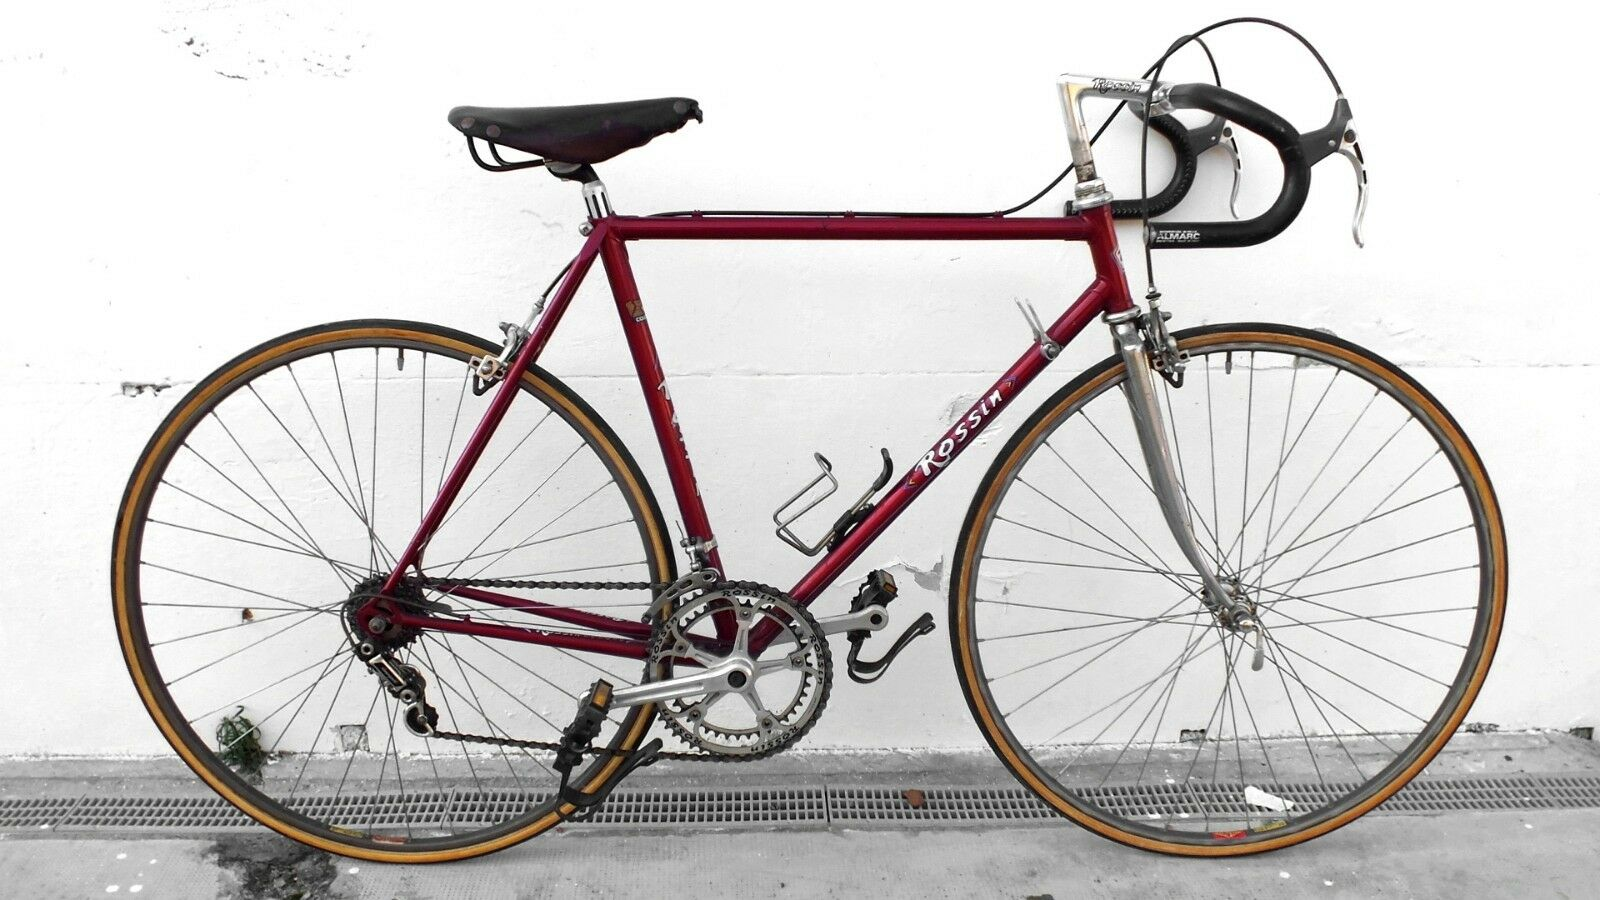 Rossin Campagnolo super record race Columbus bike years'  76 (colnago era)  order online